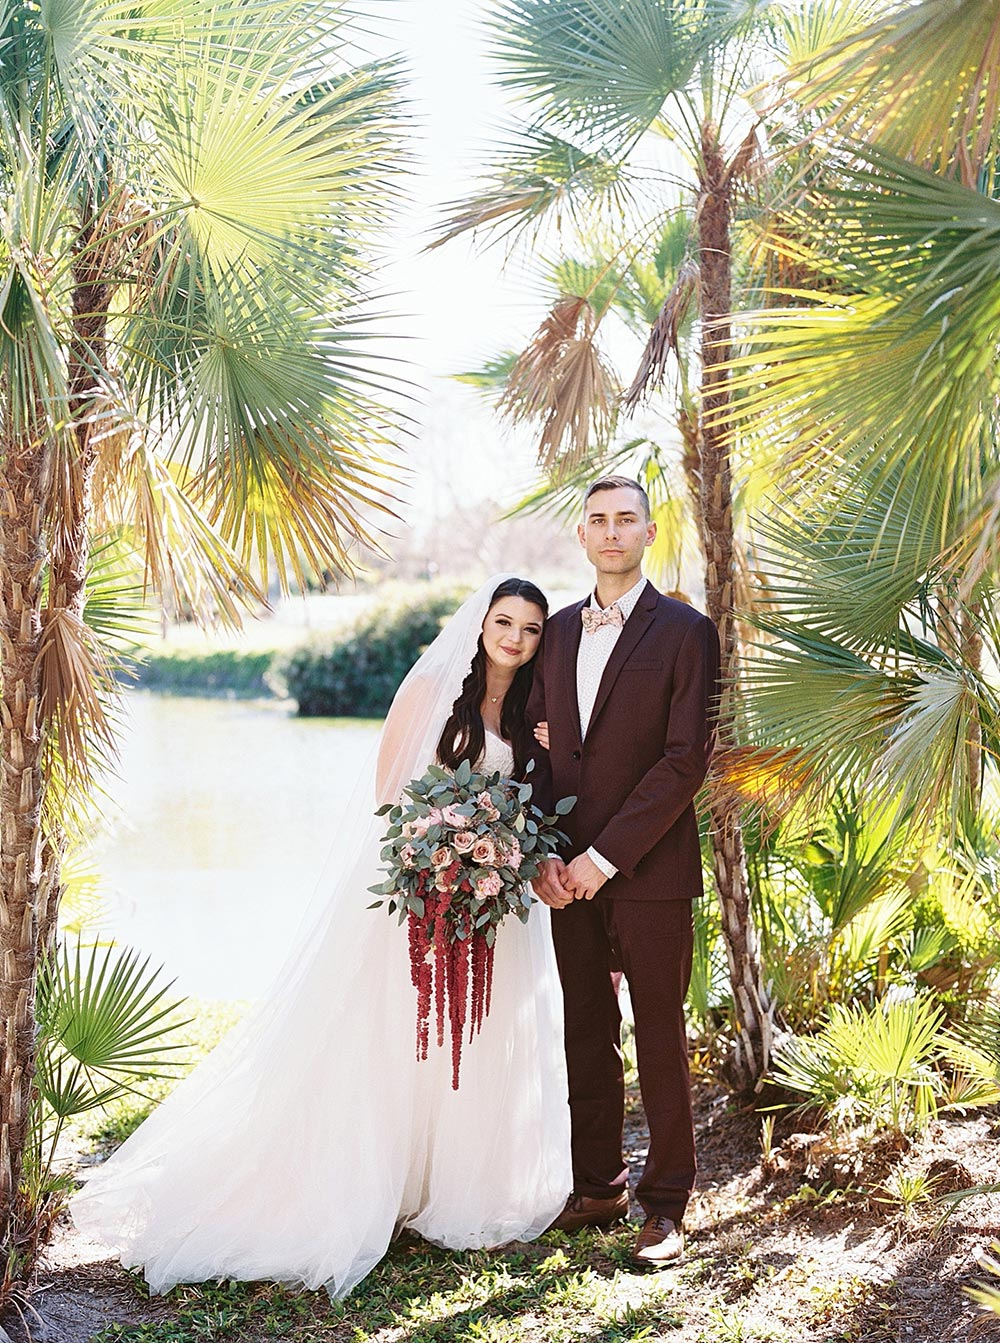 maroon groom suit and strapless wedding dress with veil